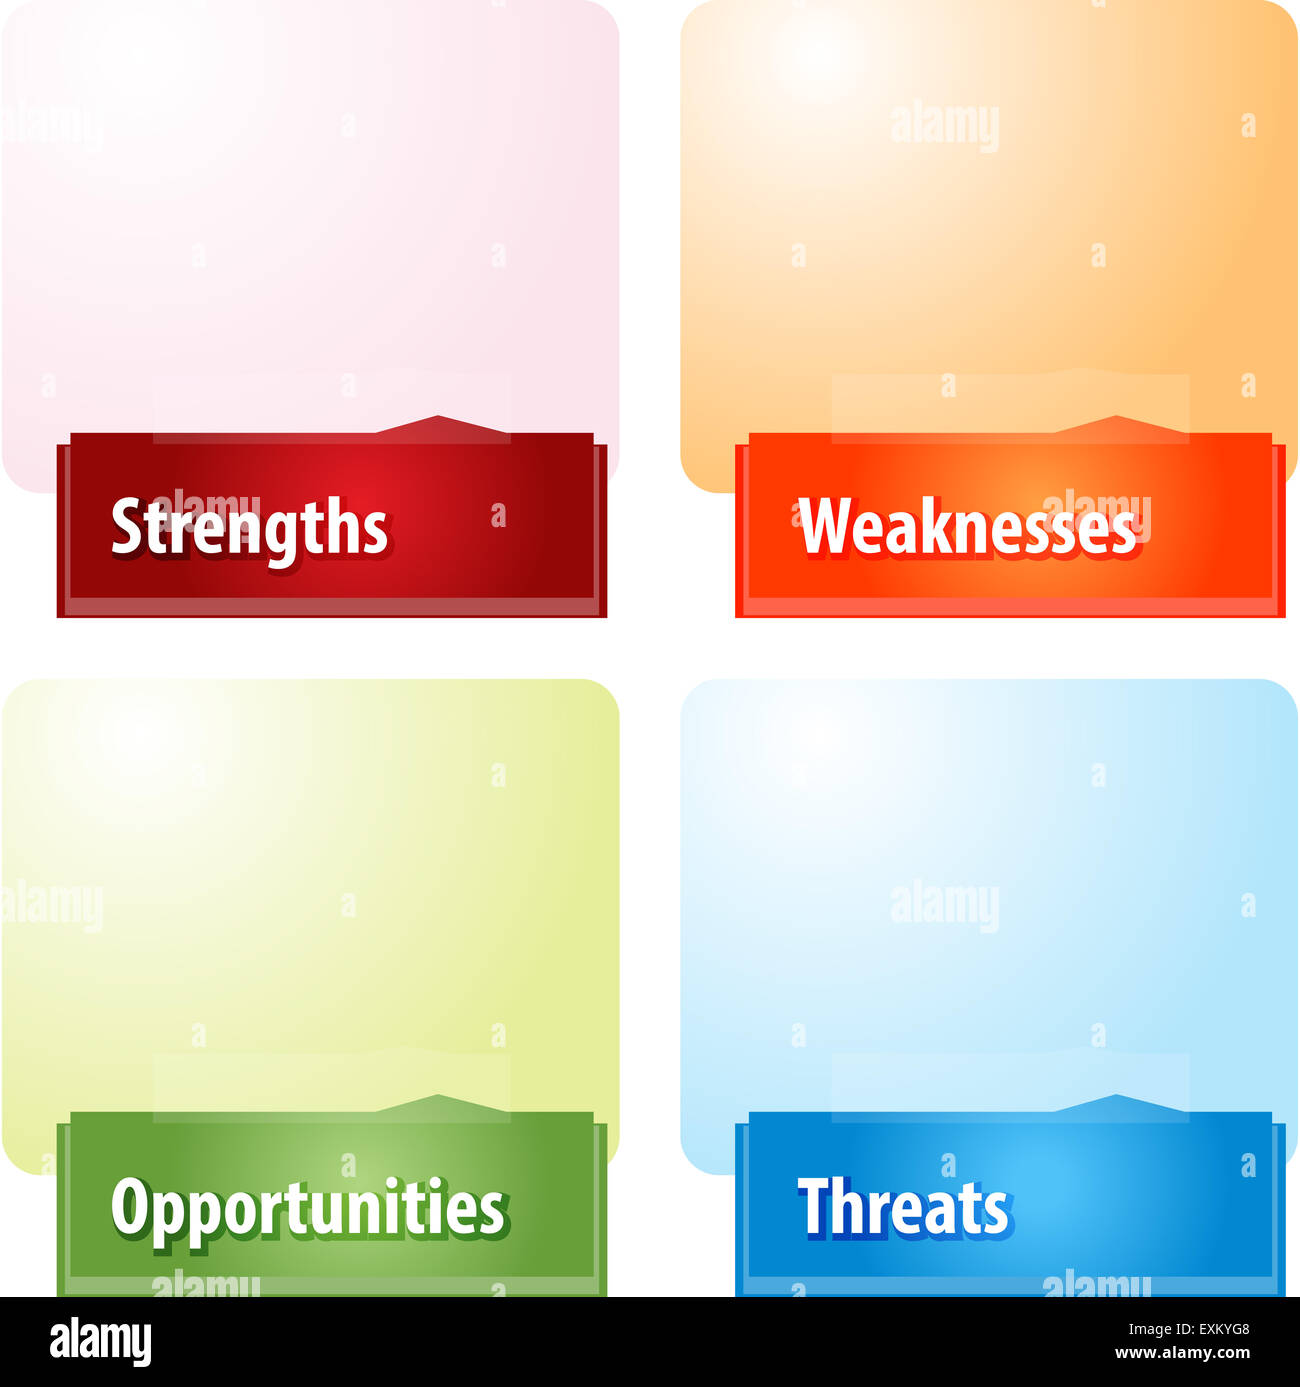 Business strategy concept infographic diagram illustration of swot business strategy concept infographic diagram illustration of swot strengths weaknesses opportunities threats ccuart Choice Image